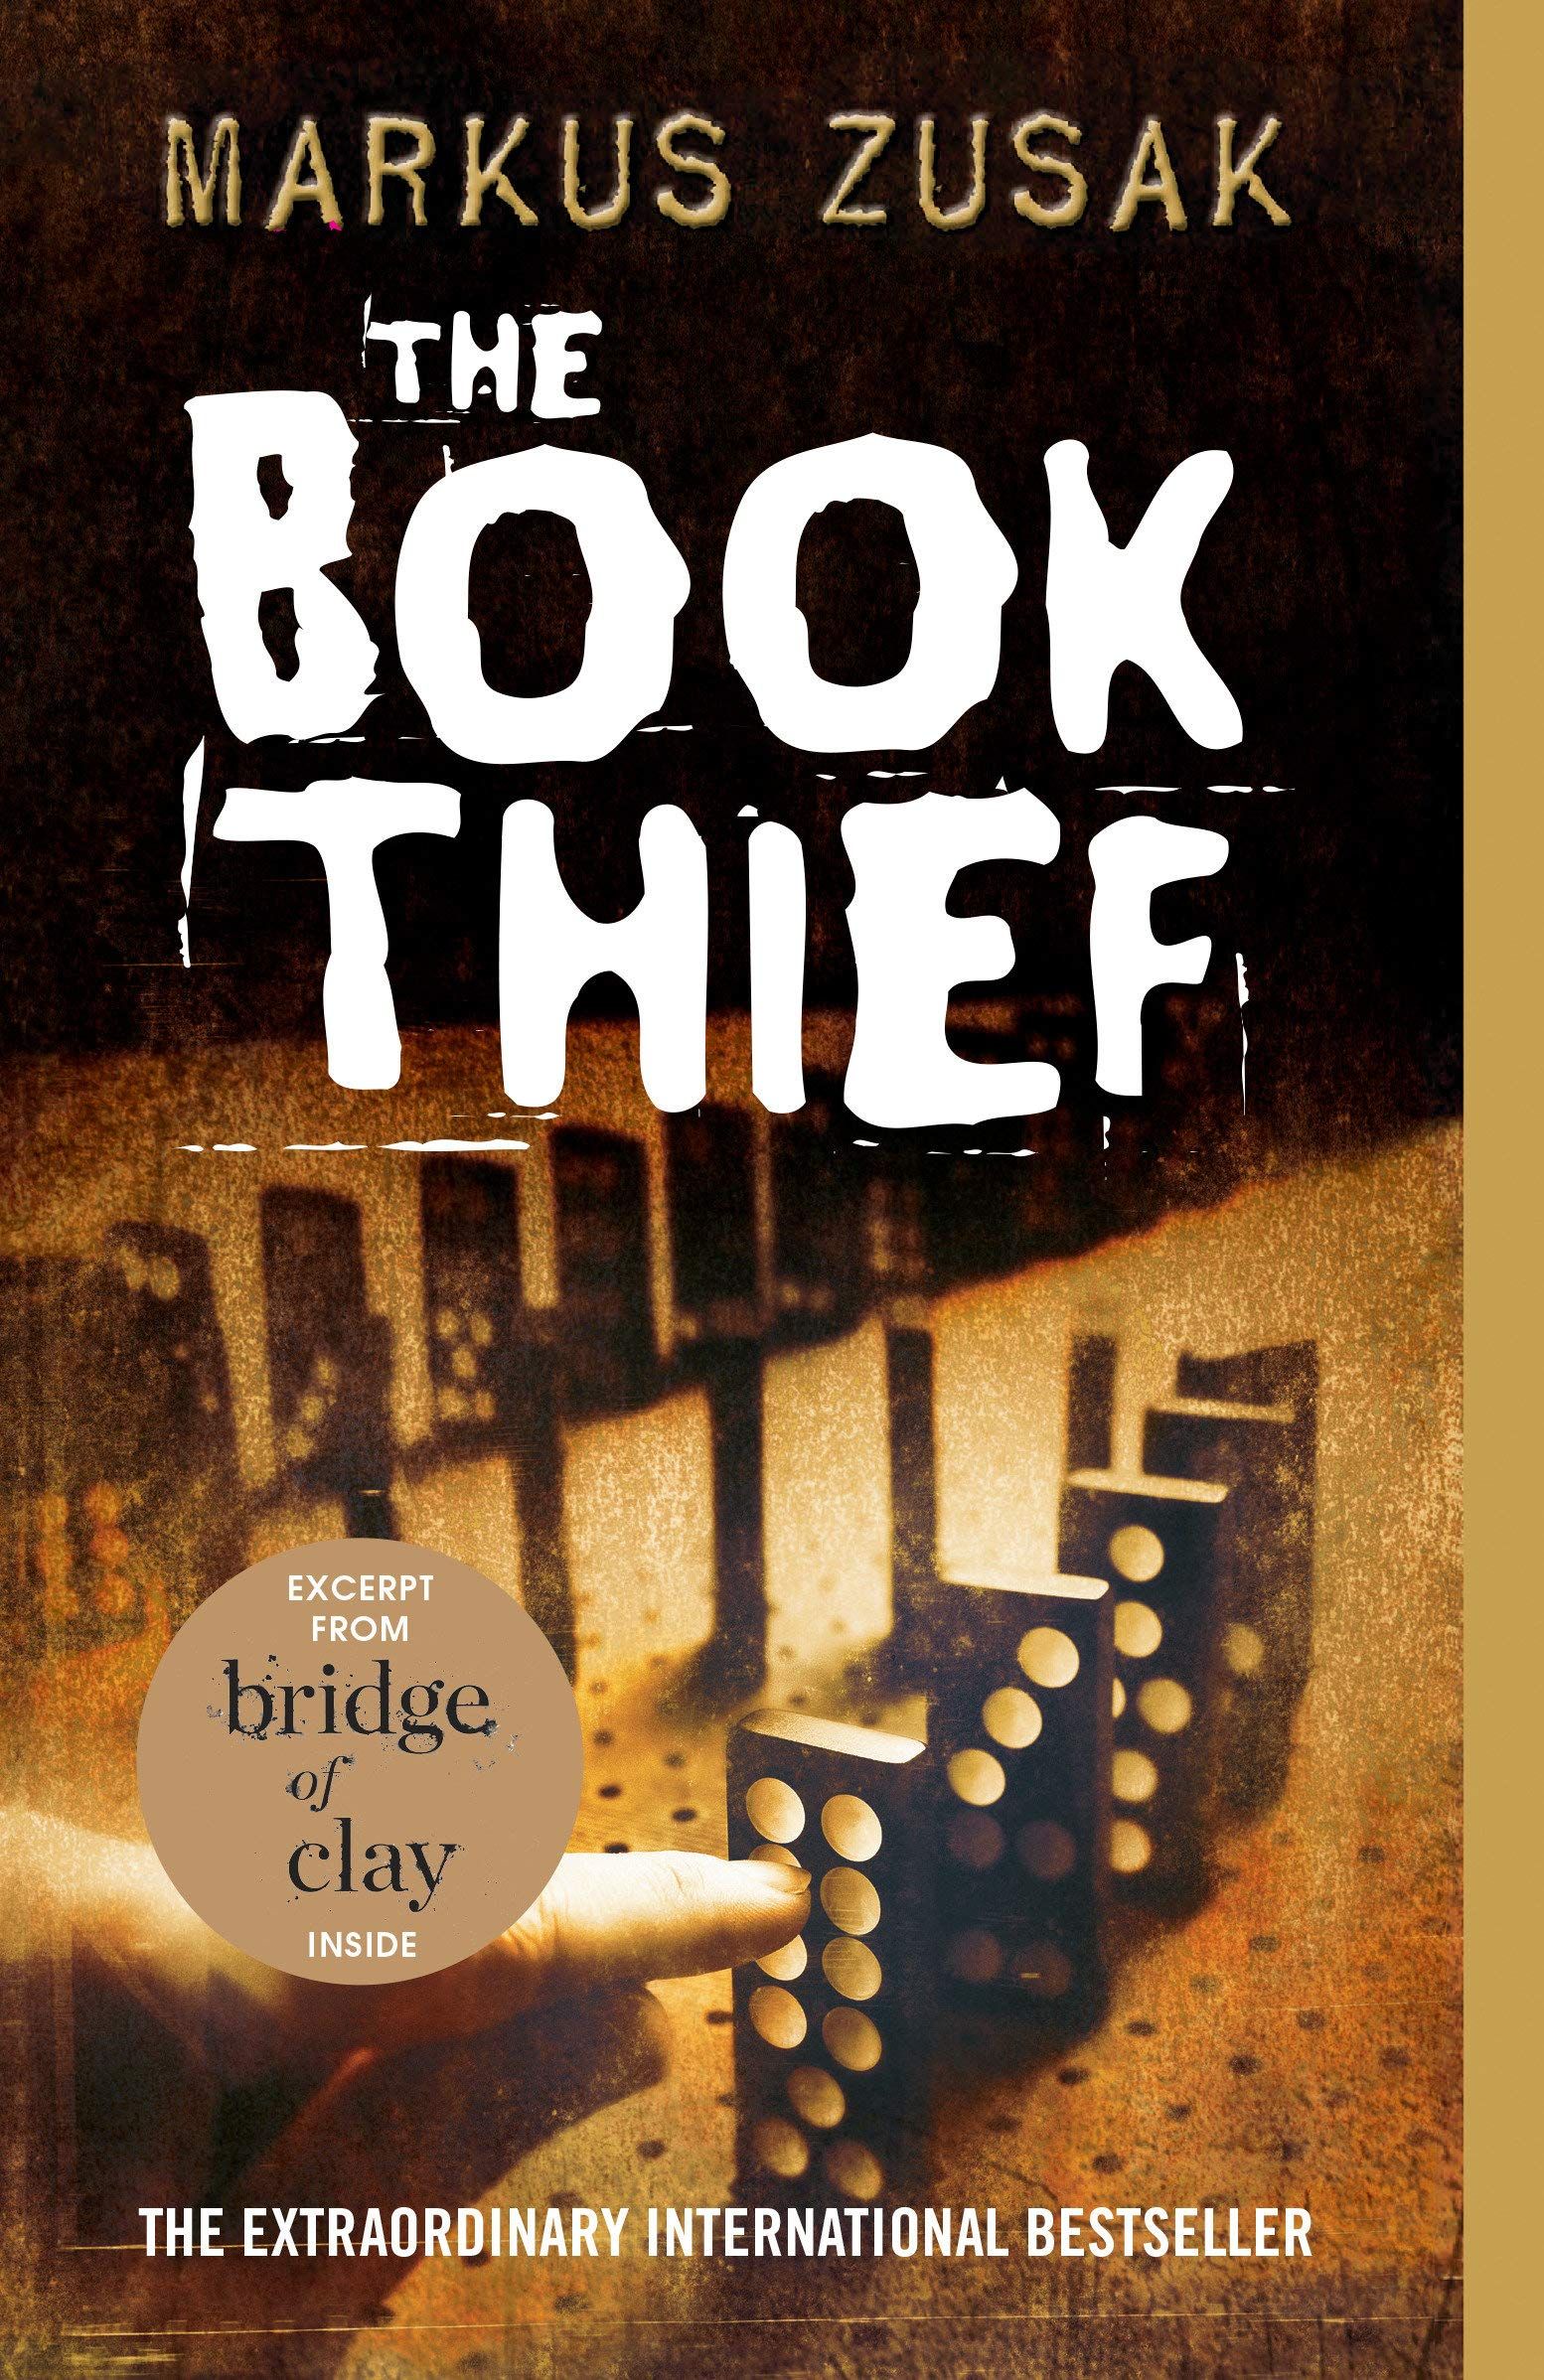 Image result for the book thief markus zusak